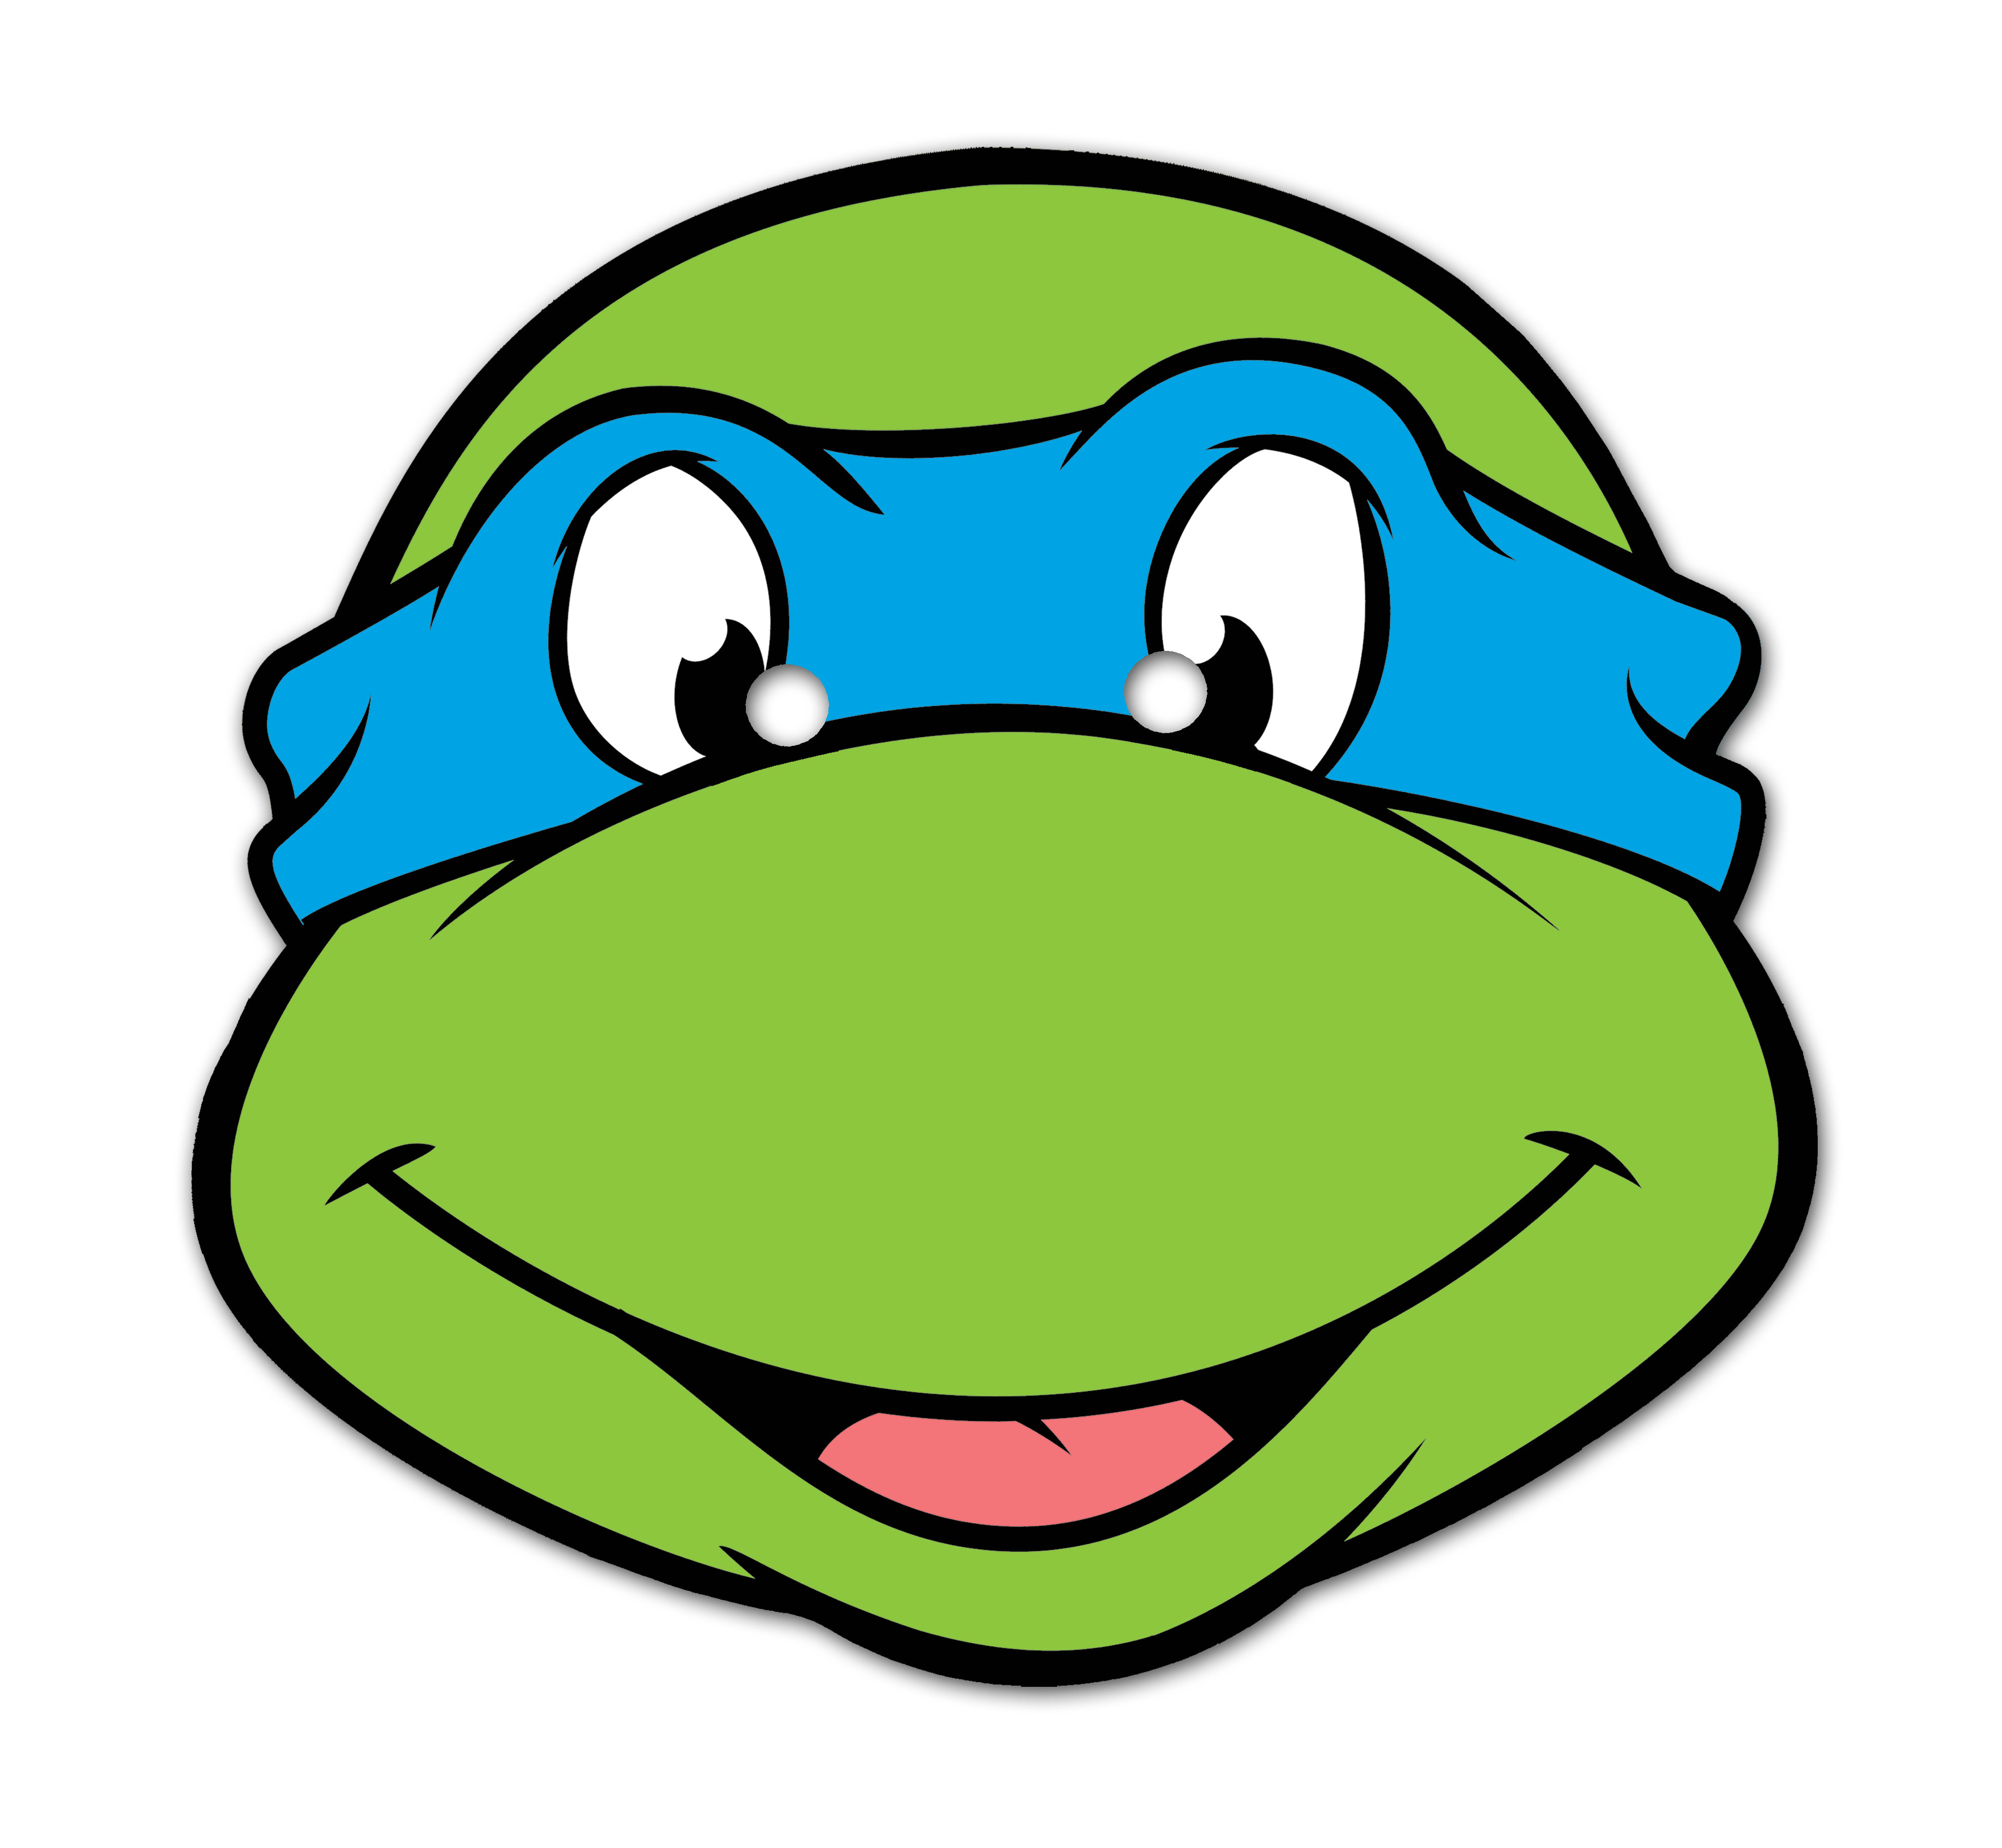 Ninja Turtle Eyes Clipart